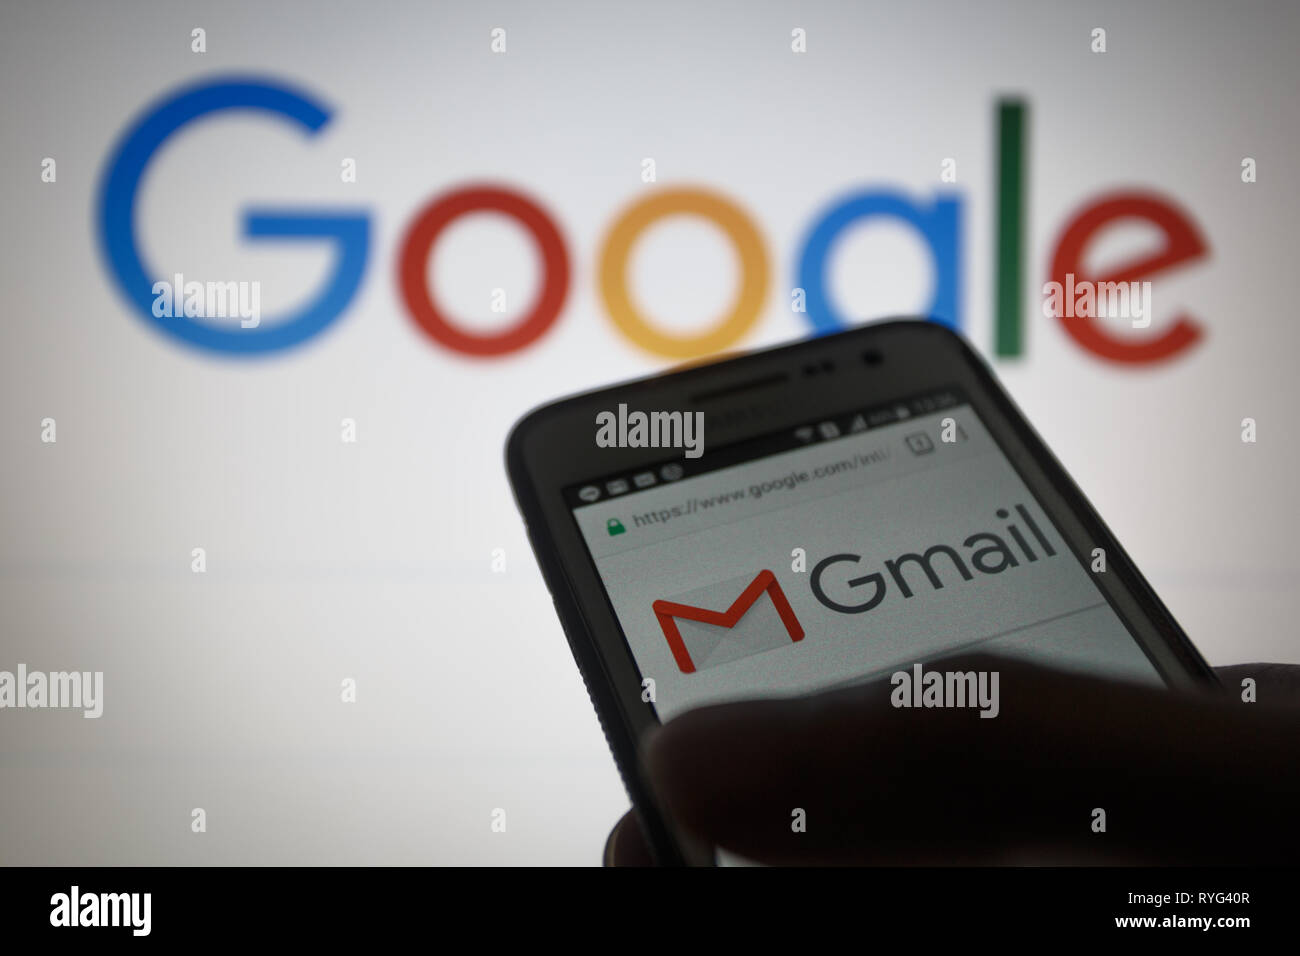 Gmail, free email service developed by Google. Logo on its website is seen on a smartphone display, Google logo unfocused on background - Stock Image